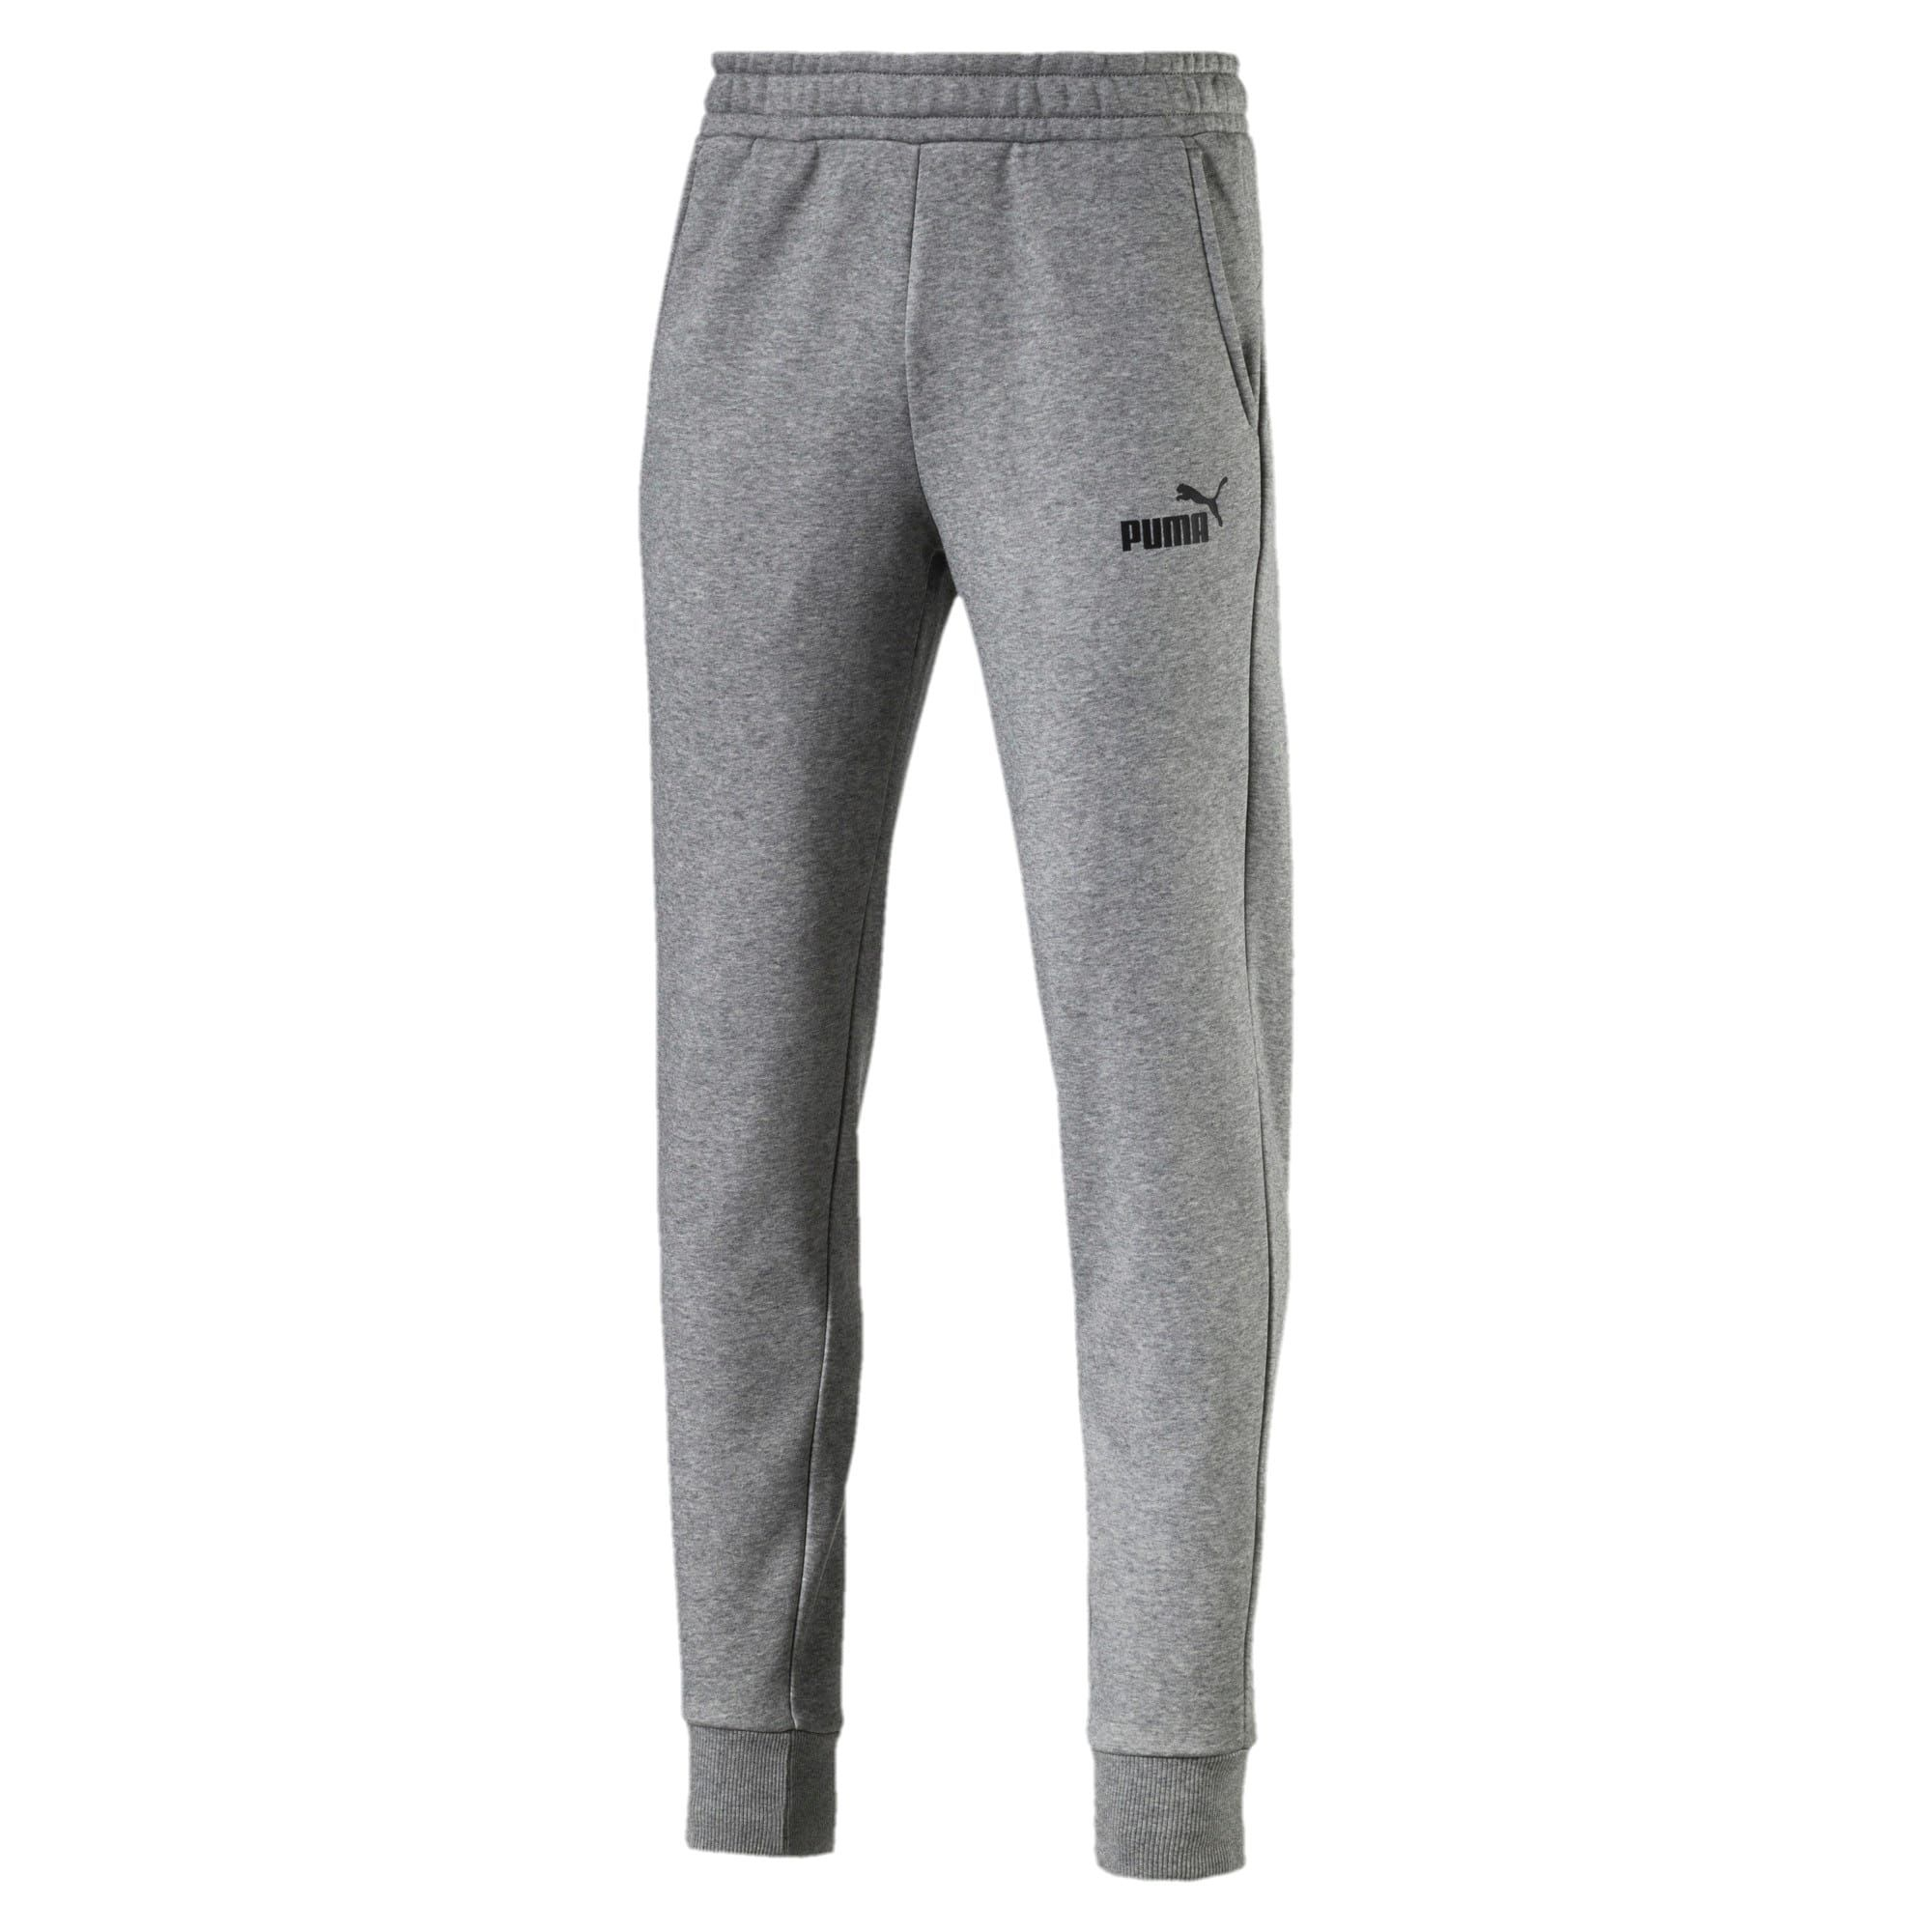 PUMA Essentials Men's Sweatpants in Medium Grey Heather size 2X Small #sweatpantsoutfit